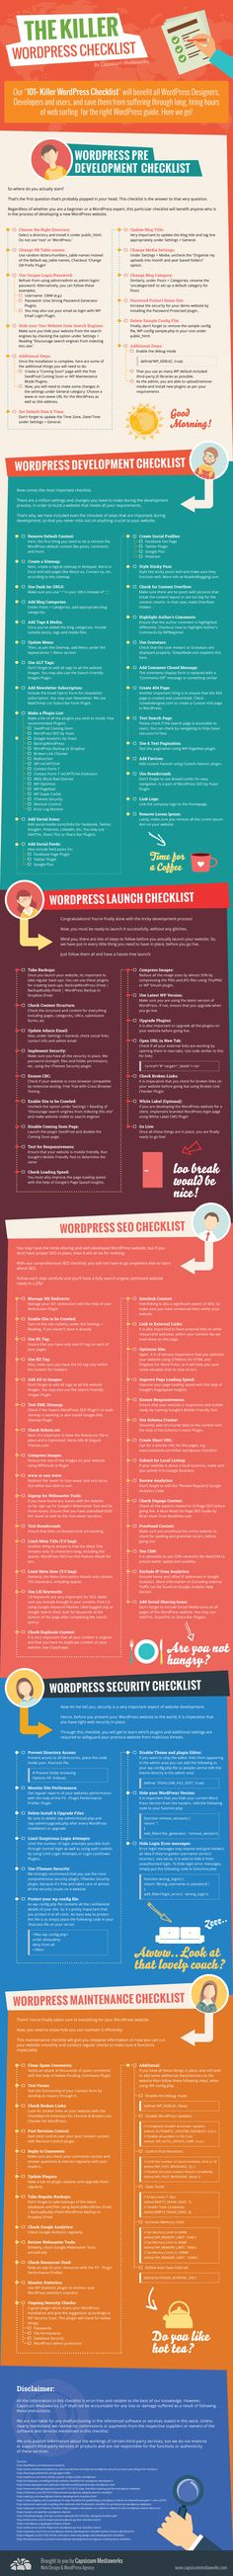 The Ultimate WordPress Checklist For Starting Your Next Website - Bluchic